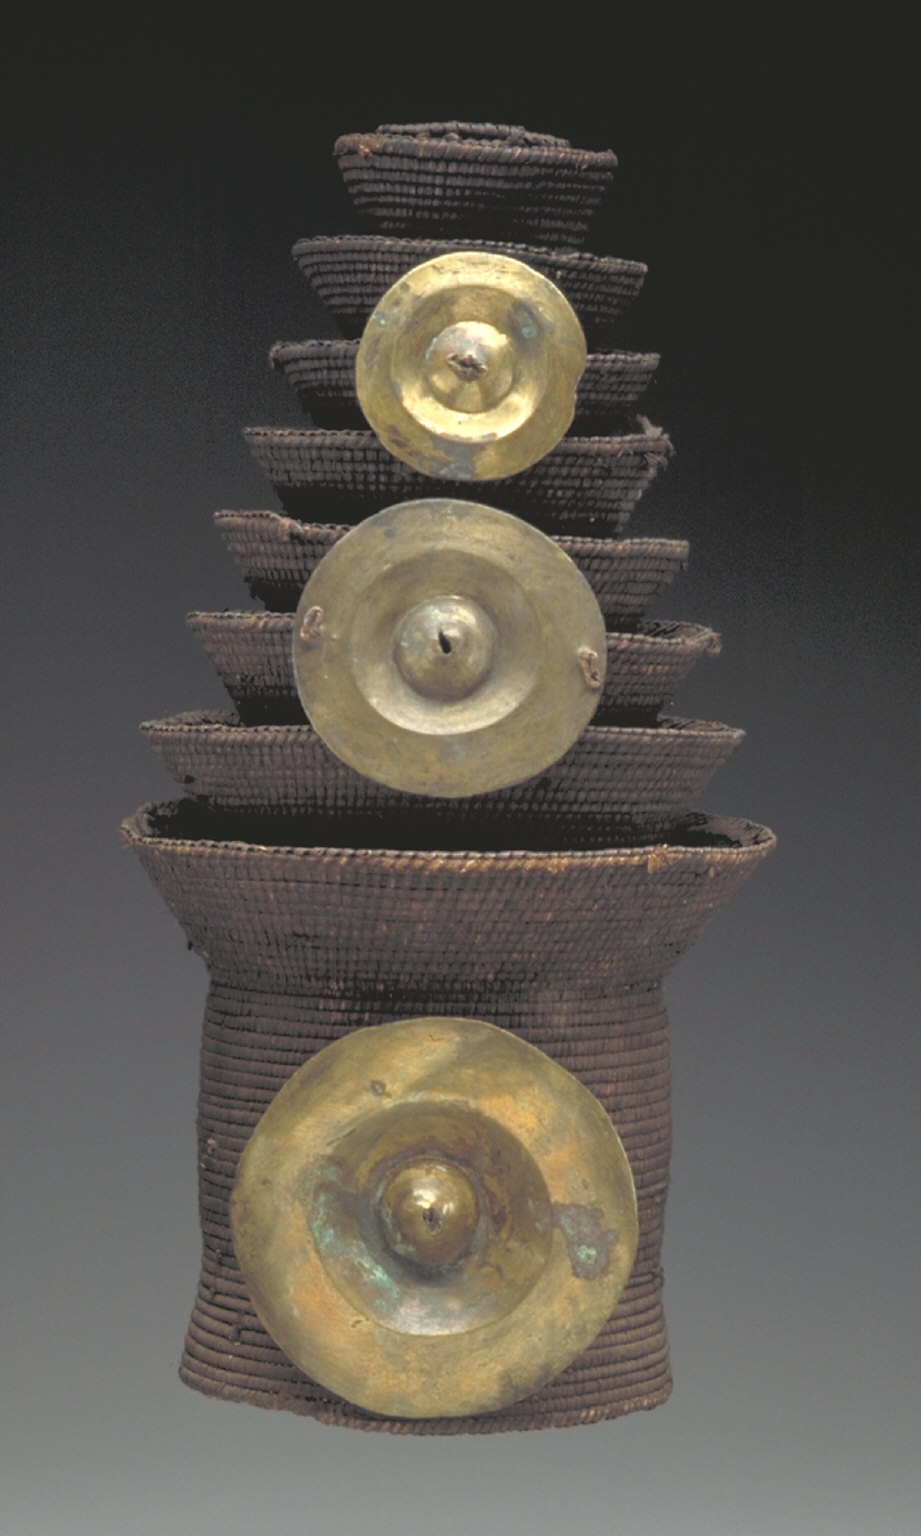 Tiered hat with brass discs (montolo)